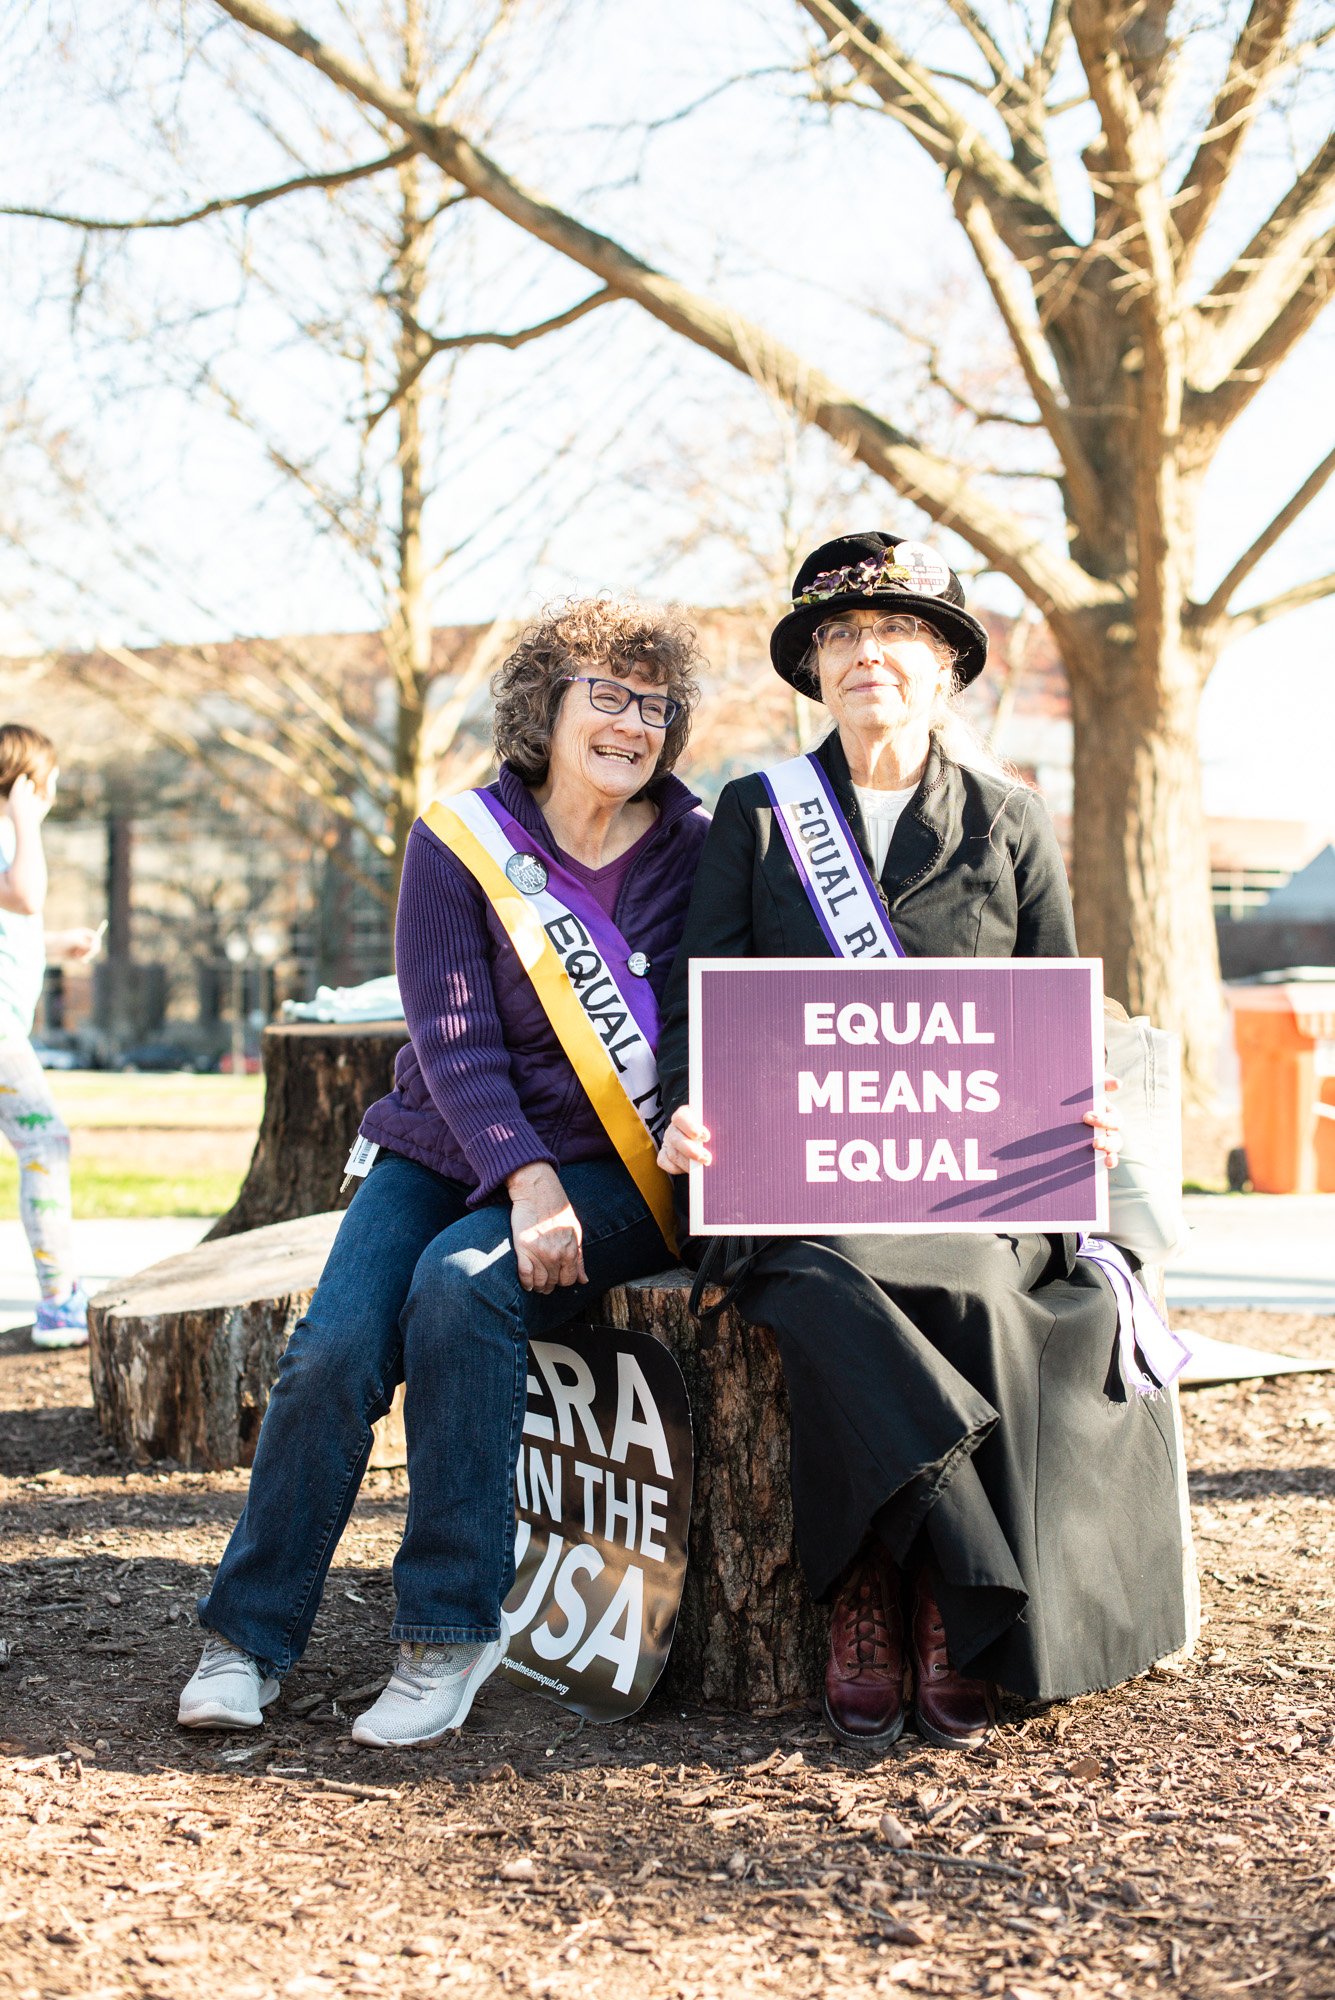 Woman in Suffragate costume holds sign